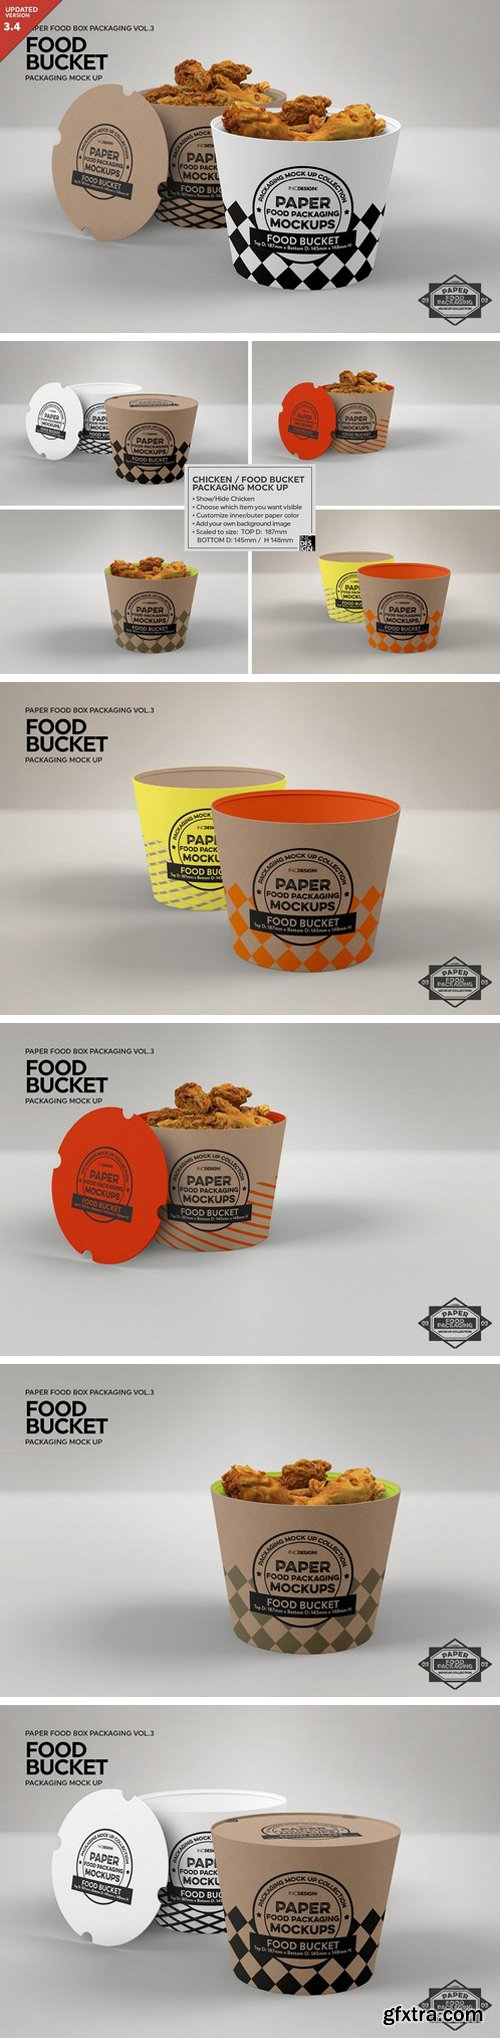 CM - Paper Food Bucket Packaging Mockup 1211261